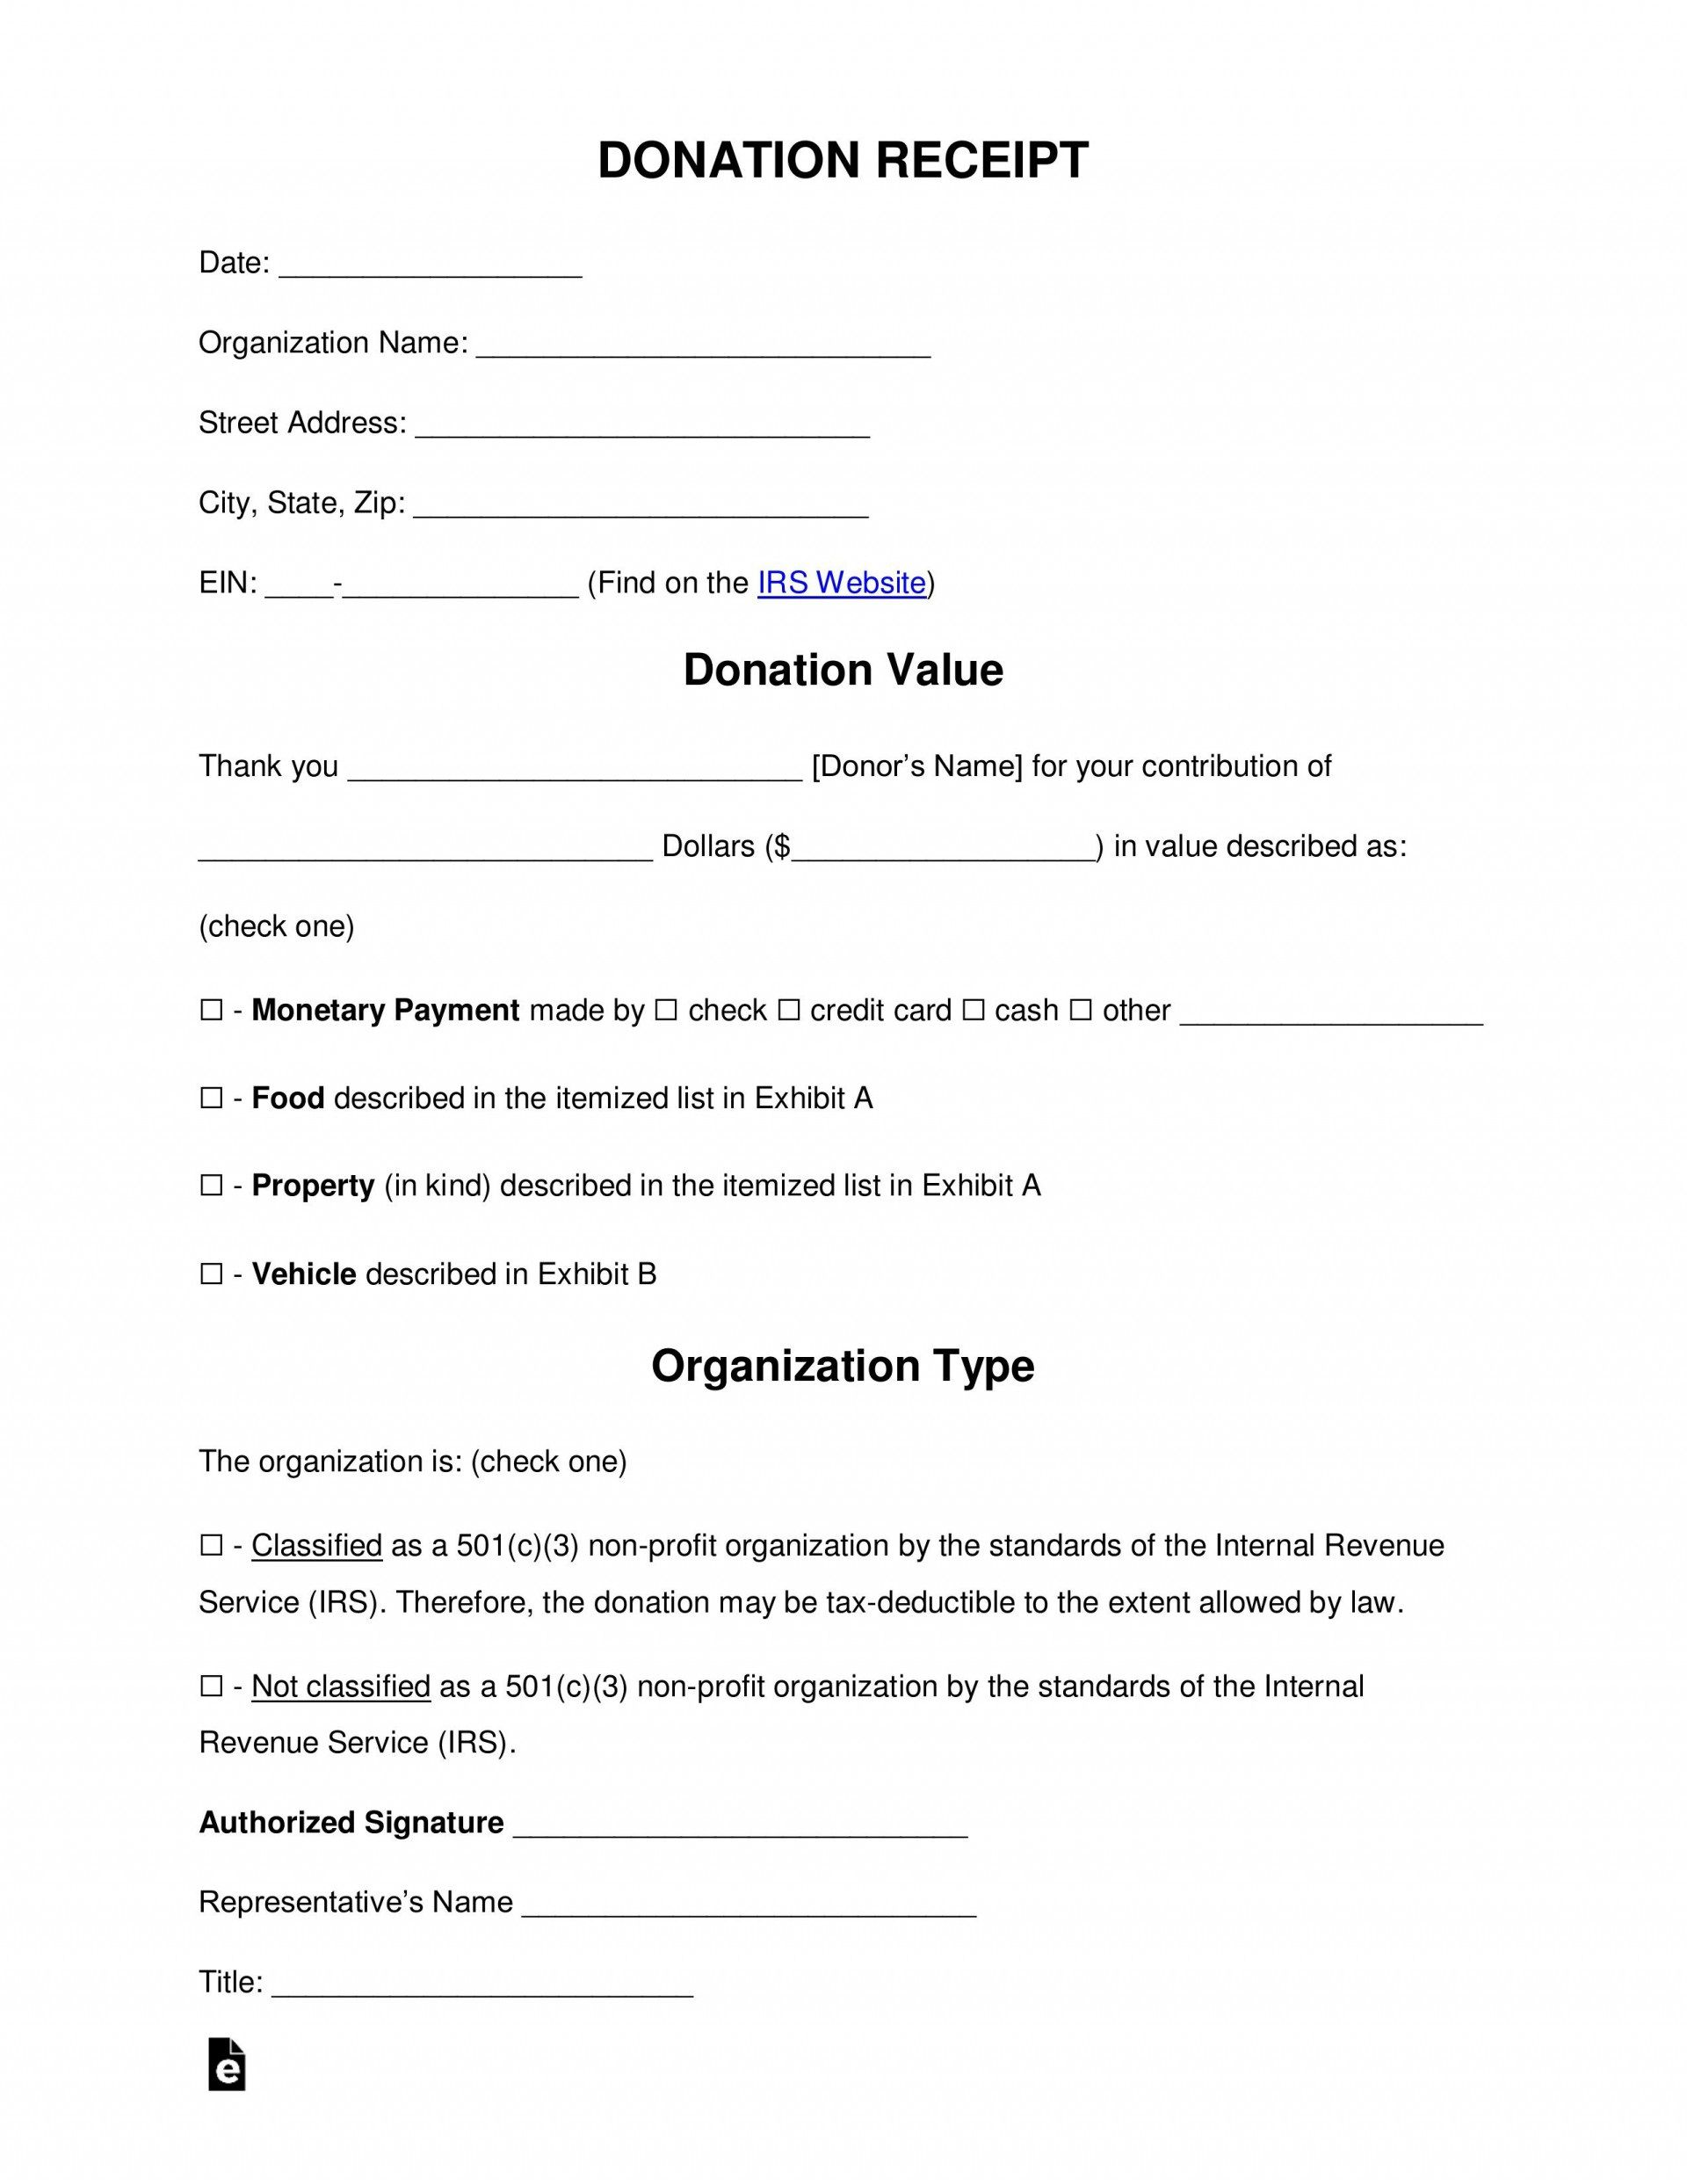 006 Exceptional Tax Deductible Donation Receipt Template Australia Inspiration Full